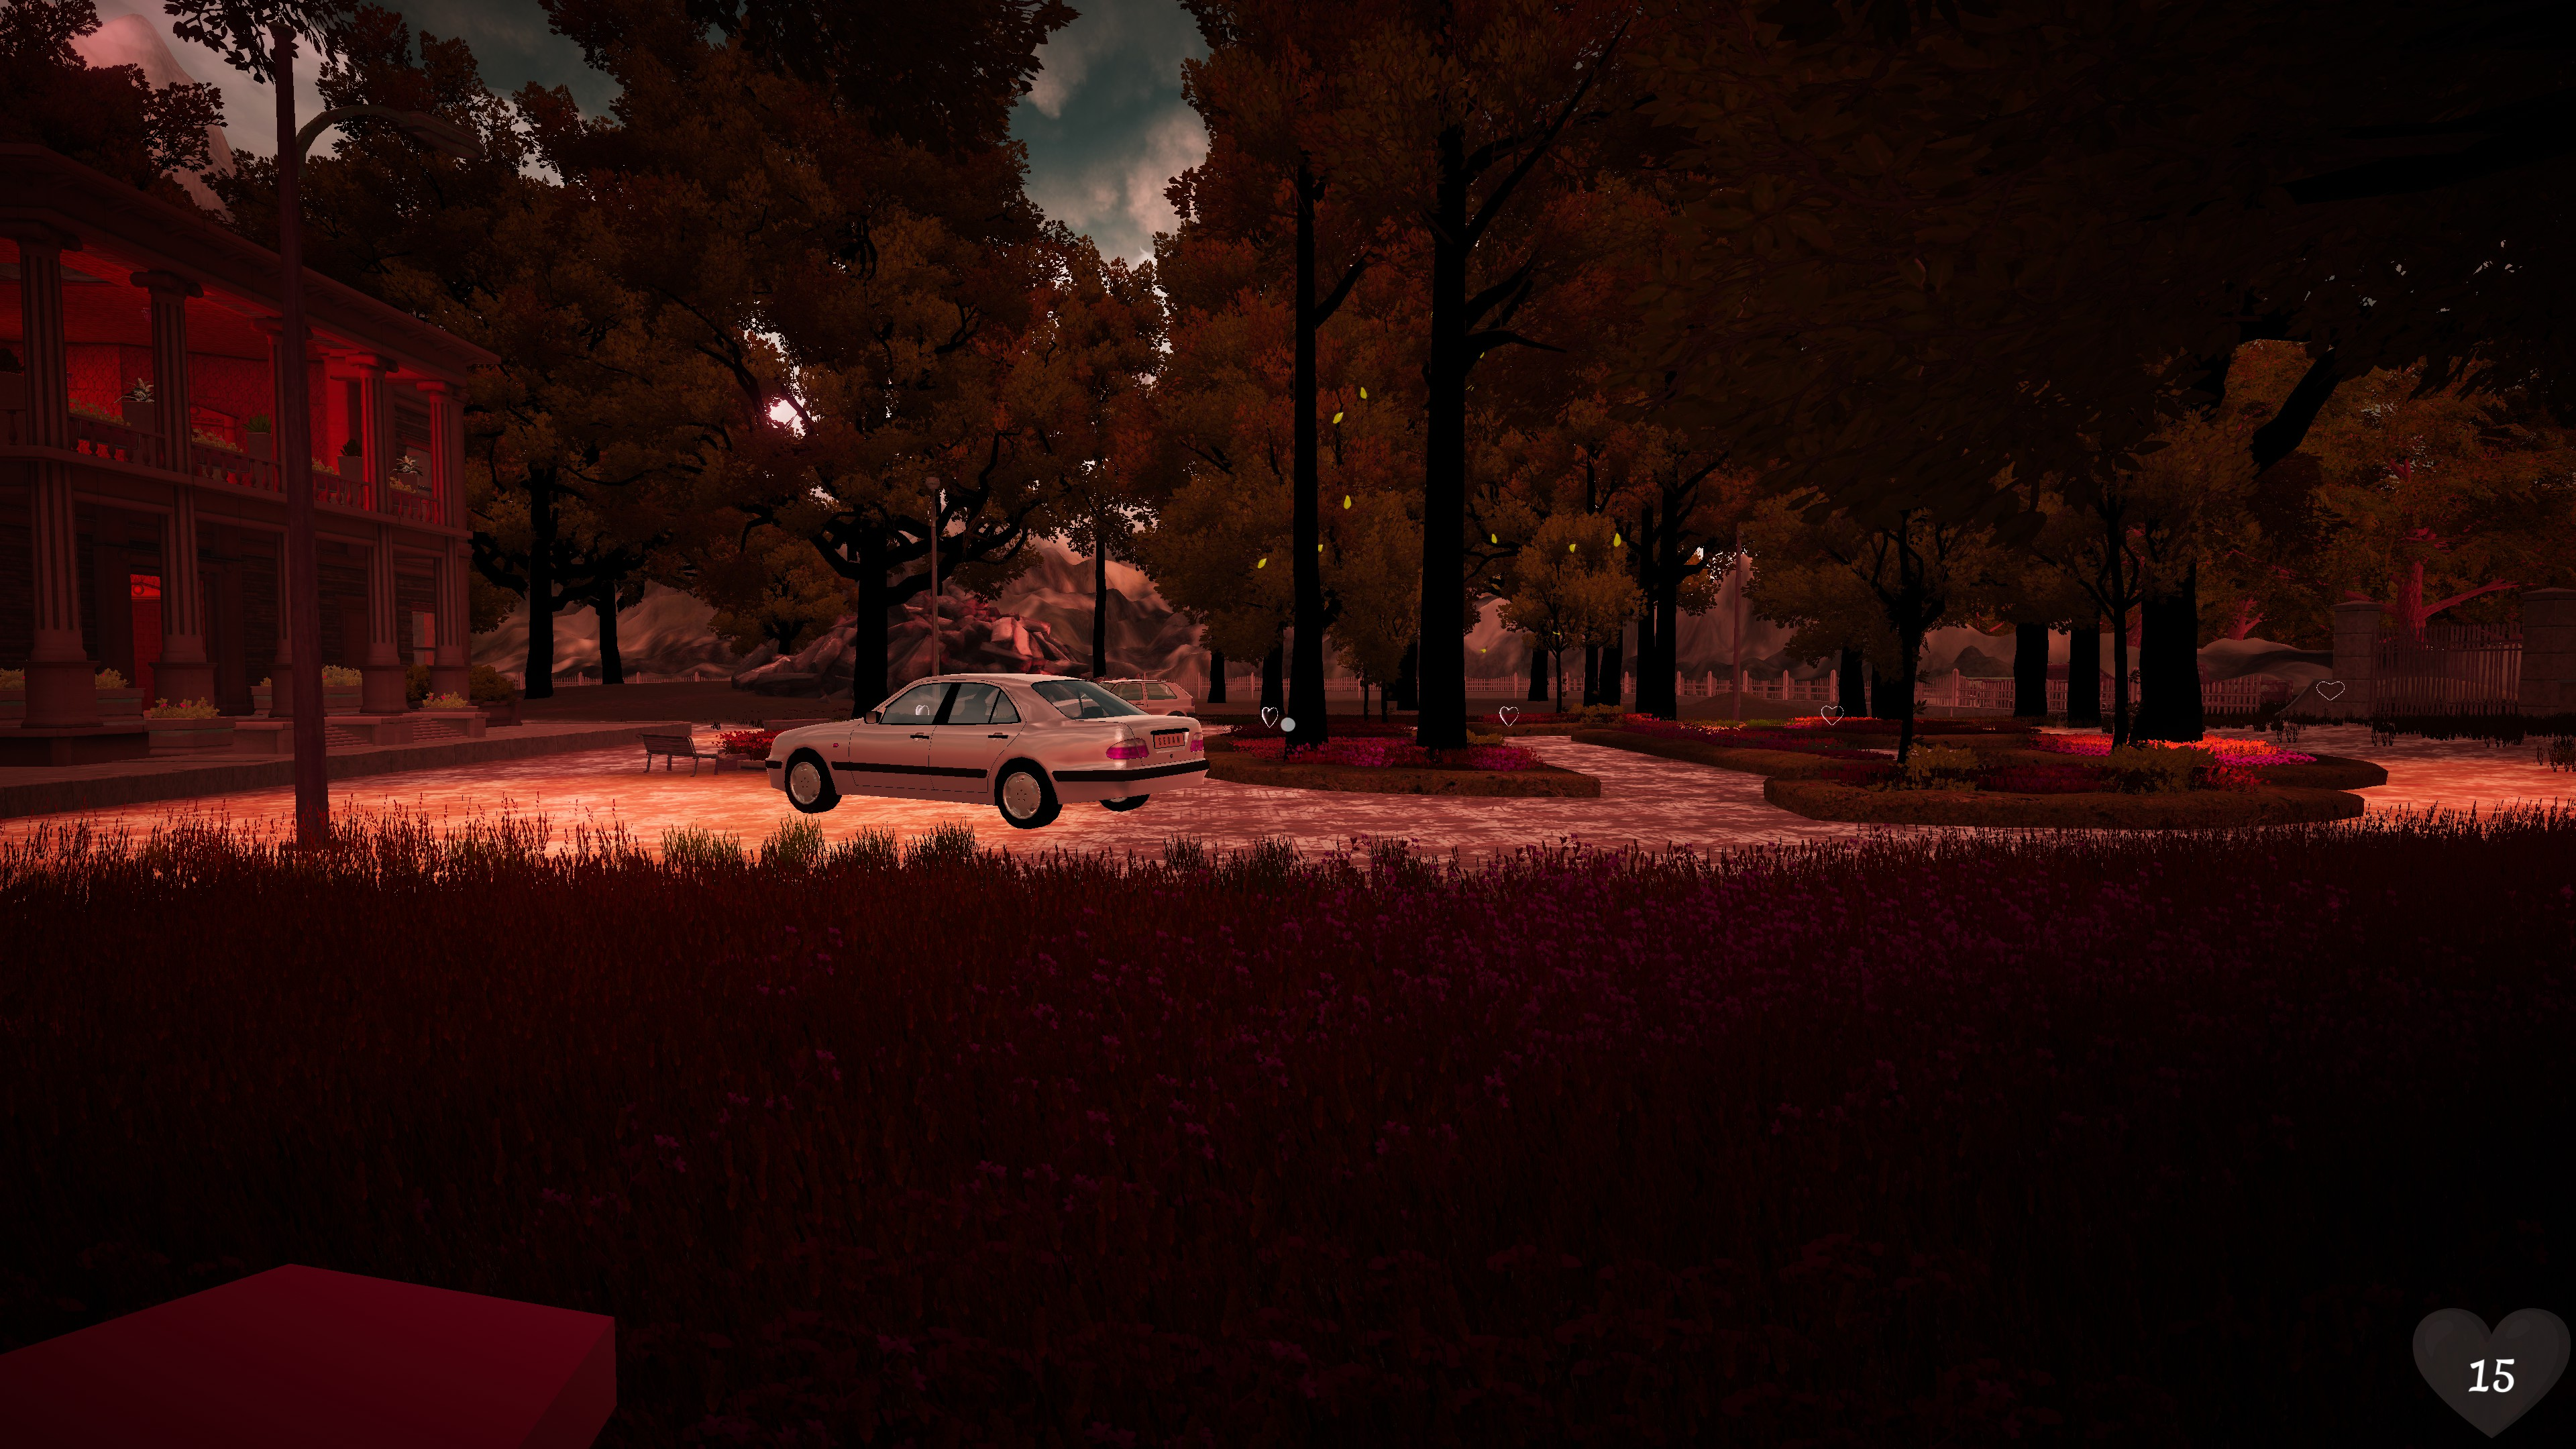 Dear Mom. A view of a driveway with trees in soft red light. Floating silver hearts lead through it.